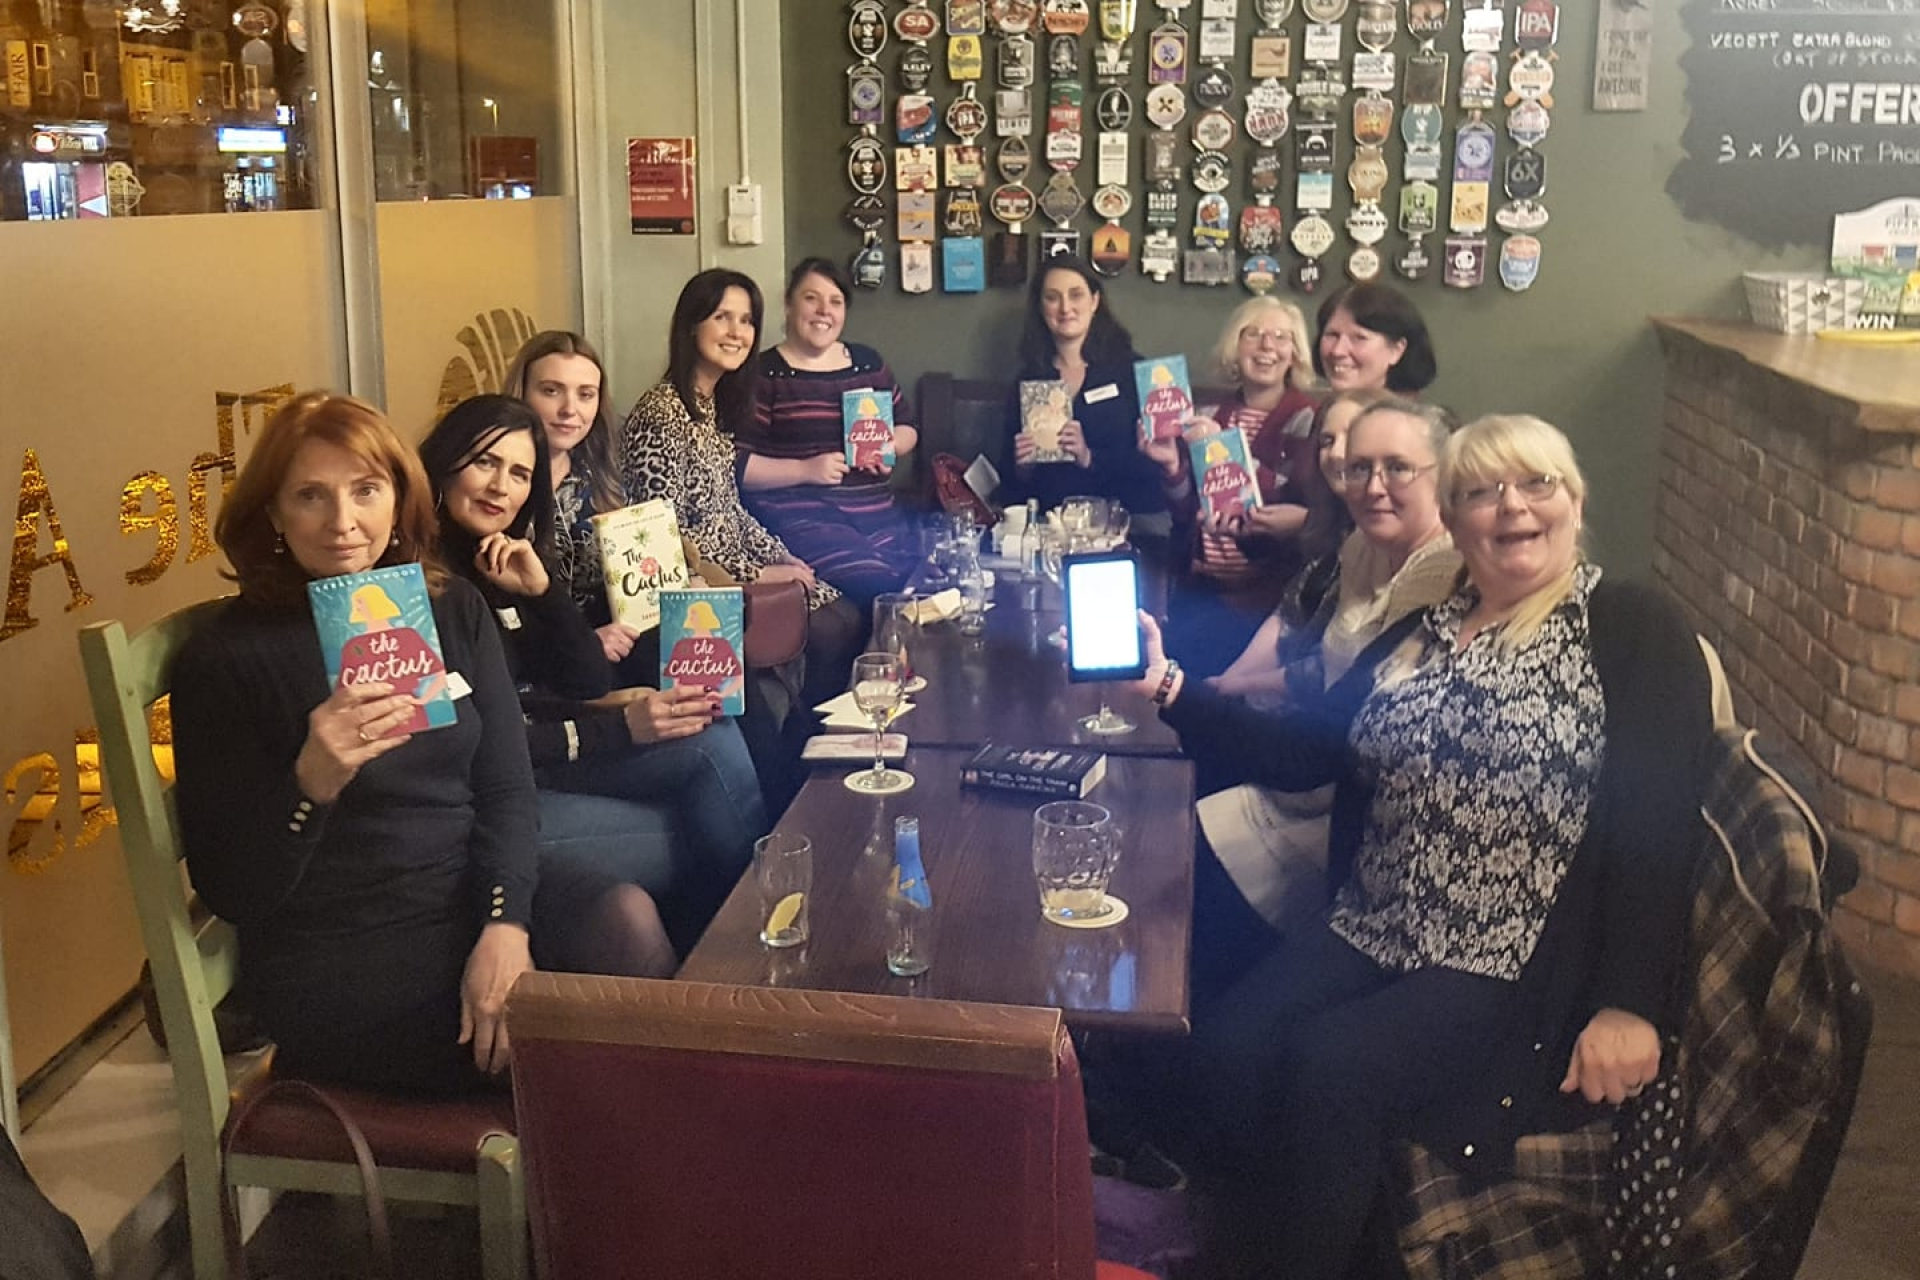 LoveReading Book Club Feature #11: Old Swan Book Club